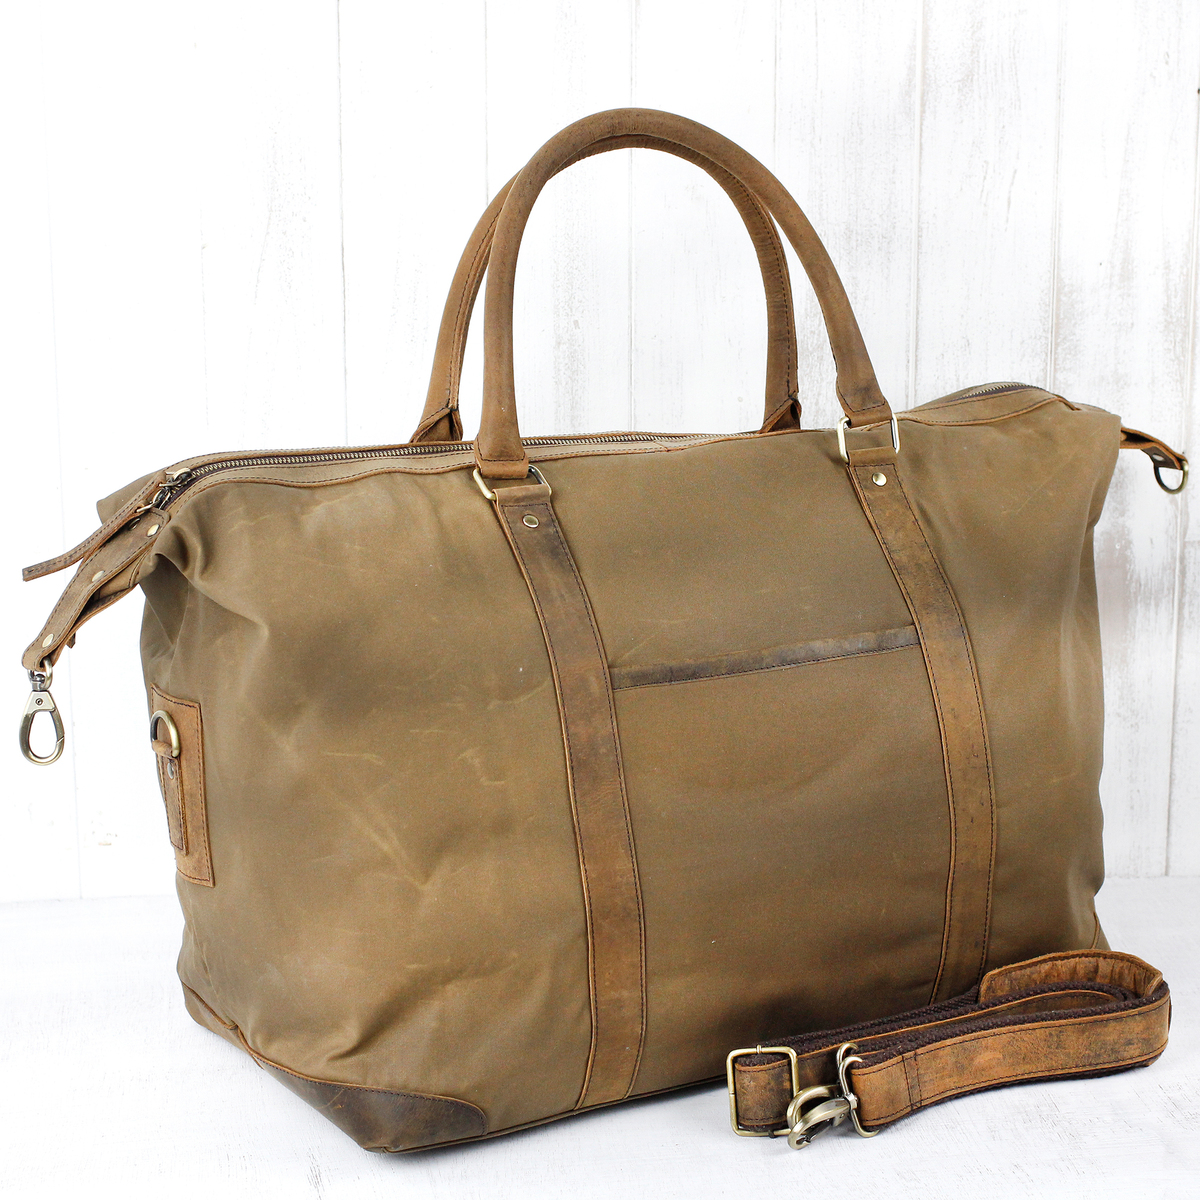 Womens Leather Weekender Bags   Leather Bags   Scaramanga